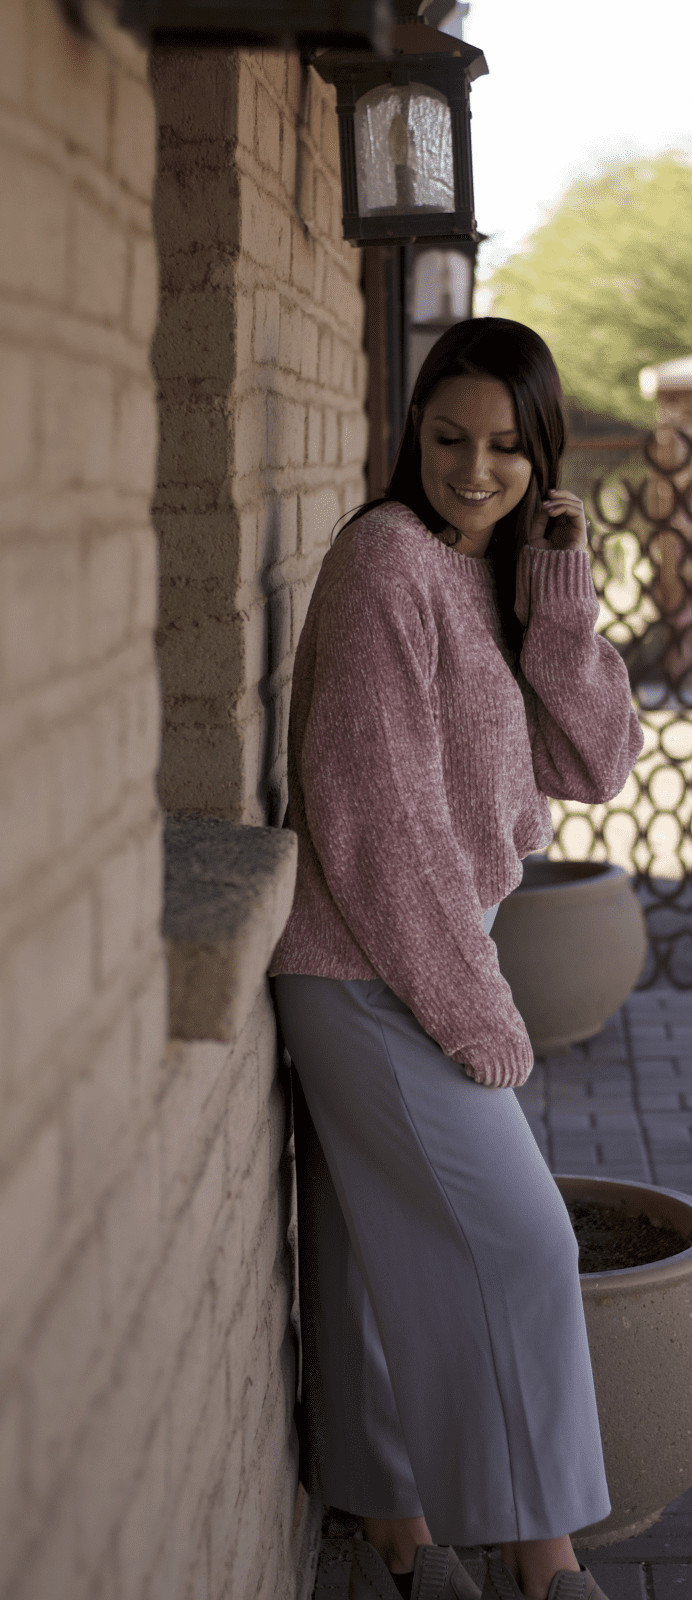 This is a full body shot of me in a pink sweater, with wide leg trouser pants standing against a wall.